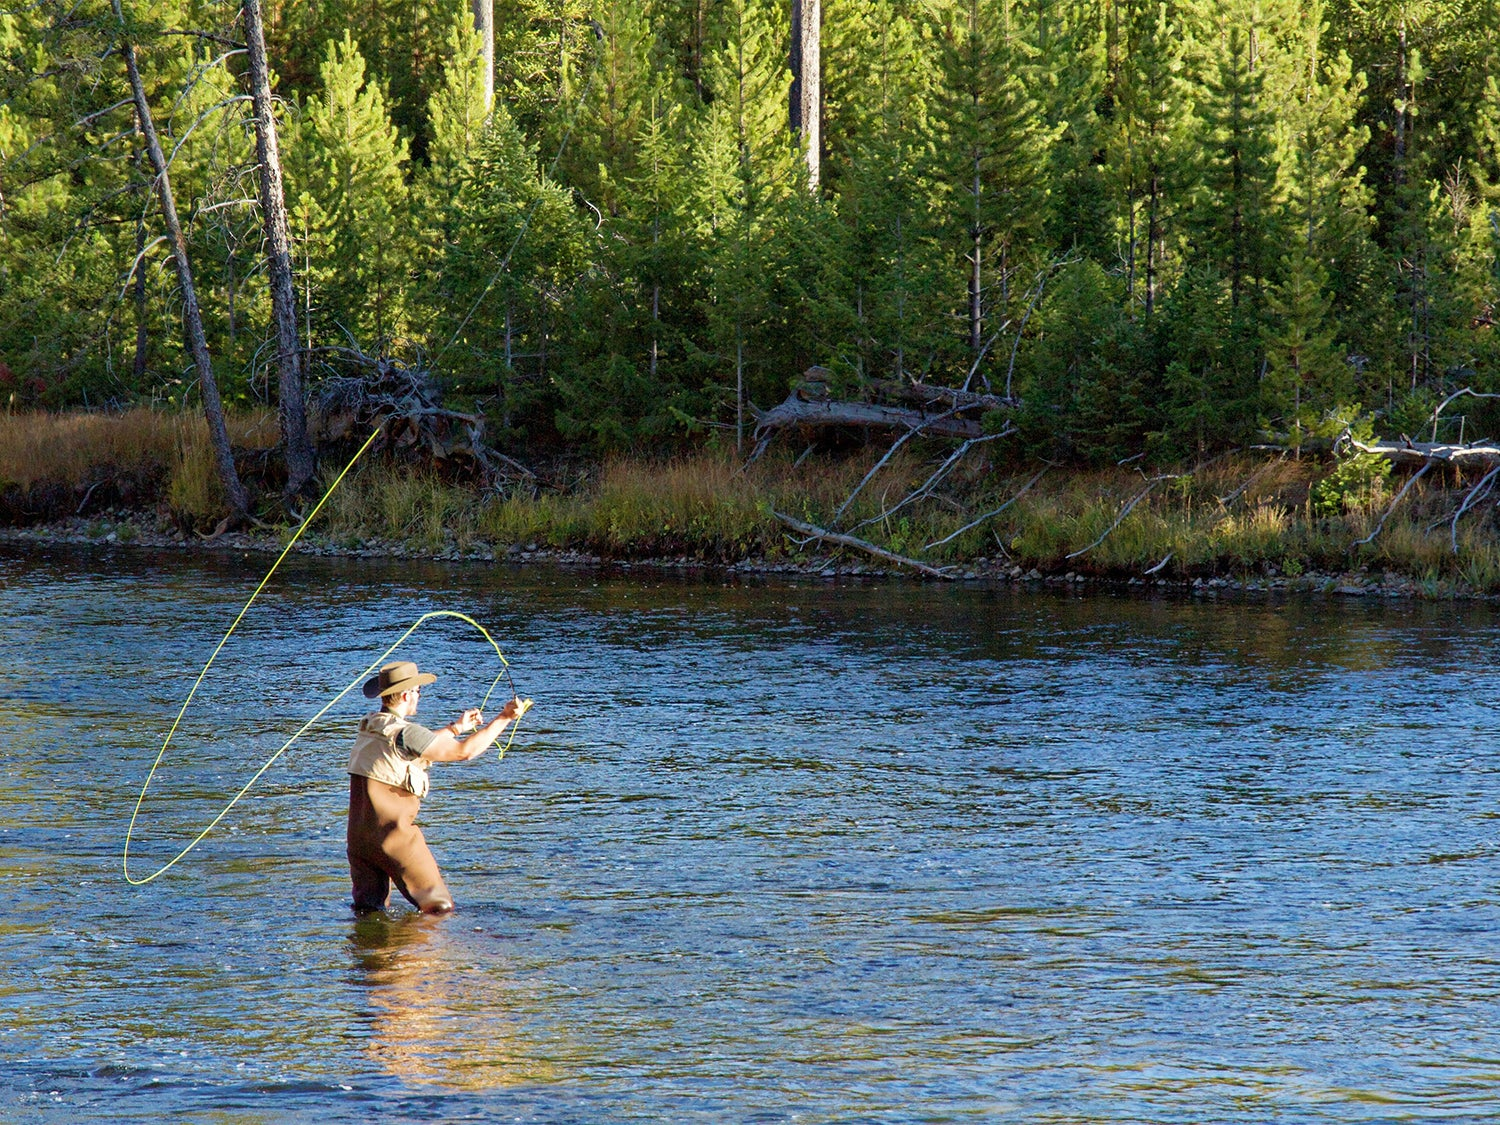 An angler wades through a river while flyfishing, wearing the best fishing vest.